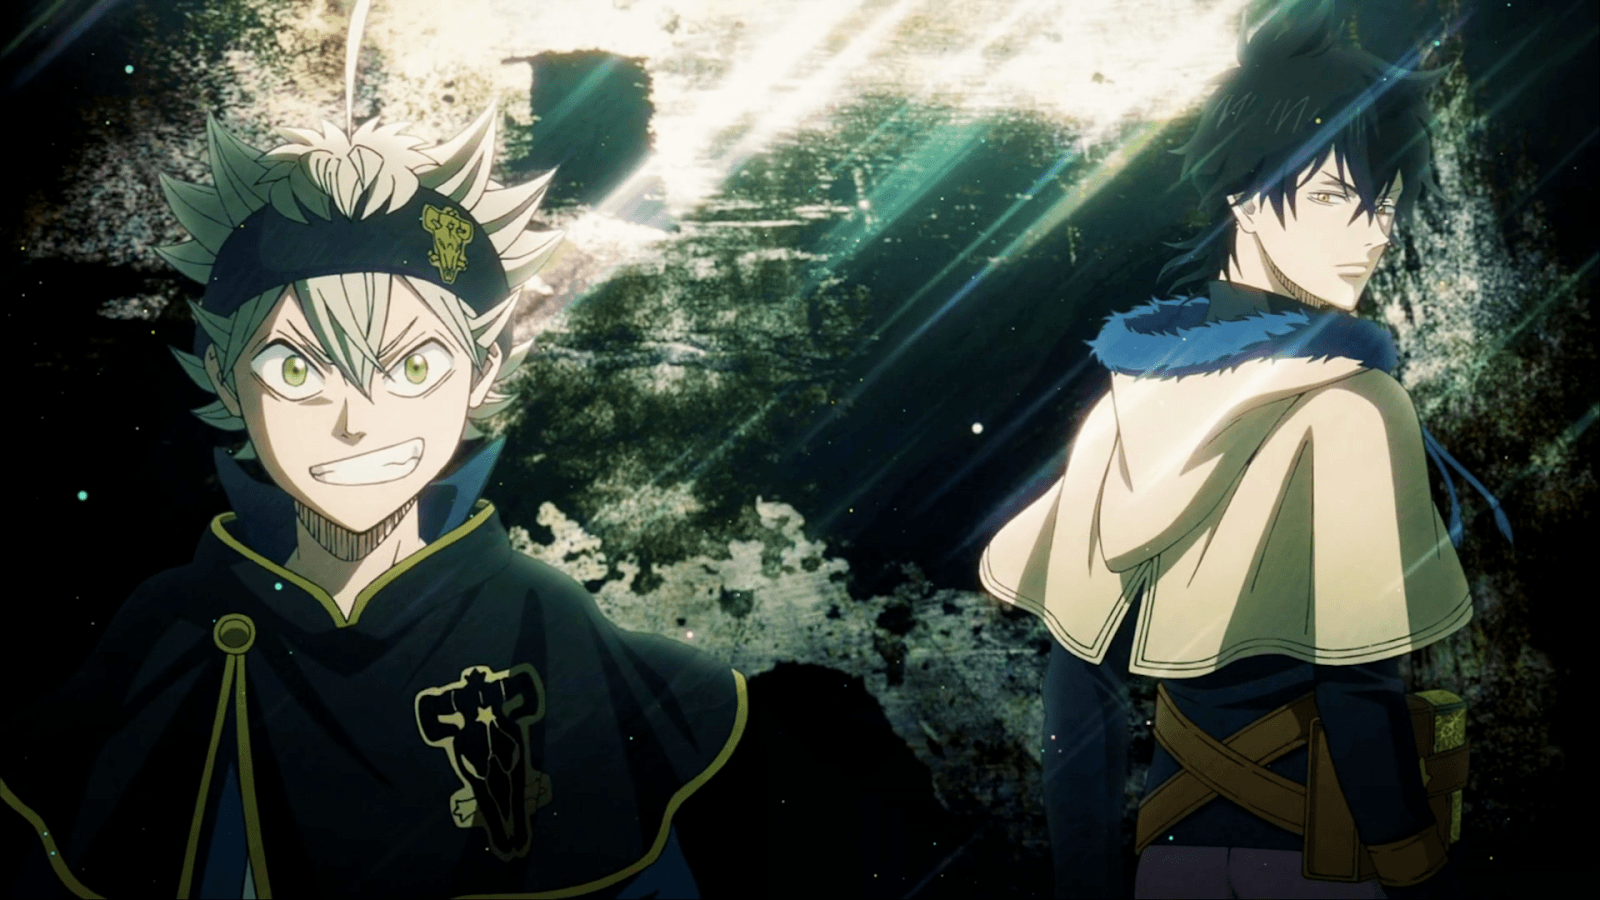 Black Clover HD Aesthetic Ps4 Wallpapers - Wallpaper Cave